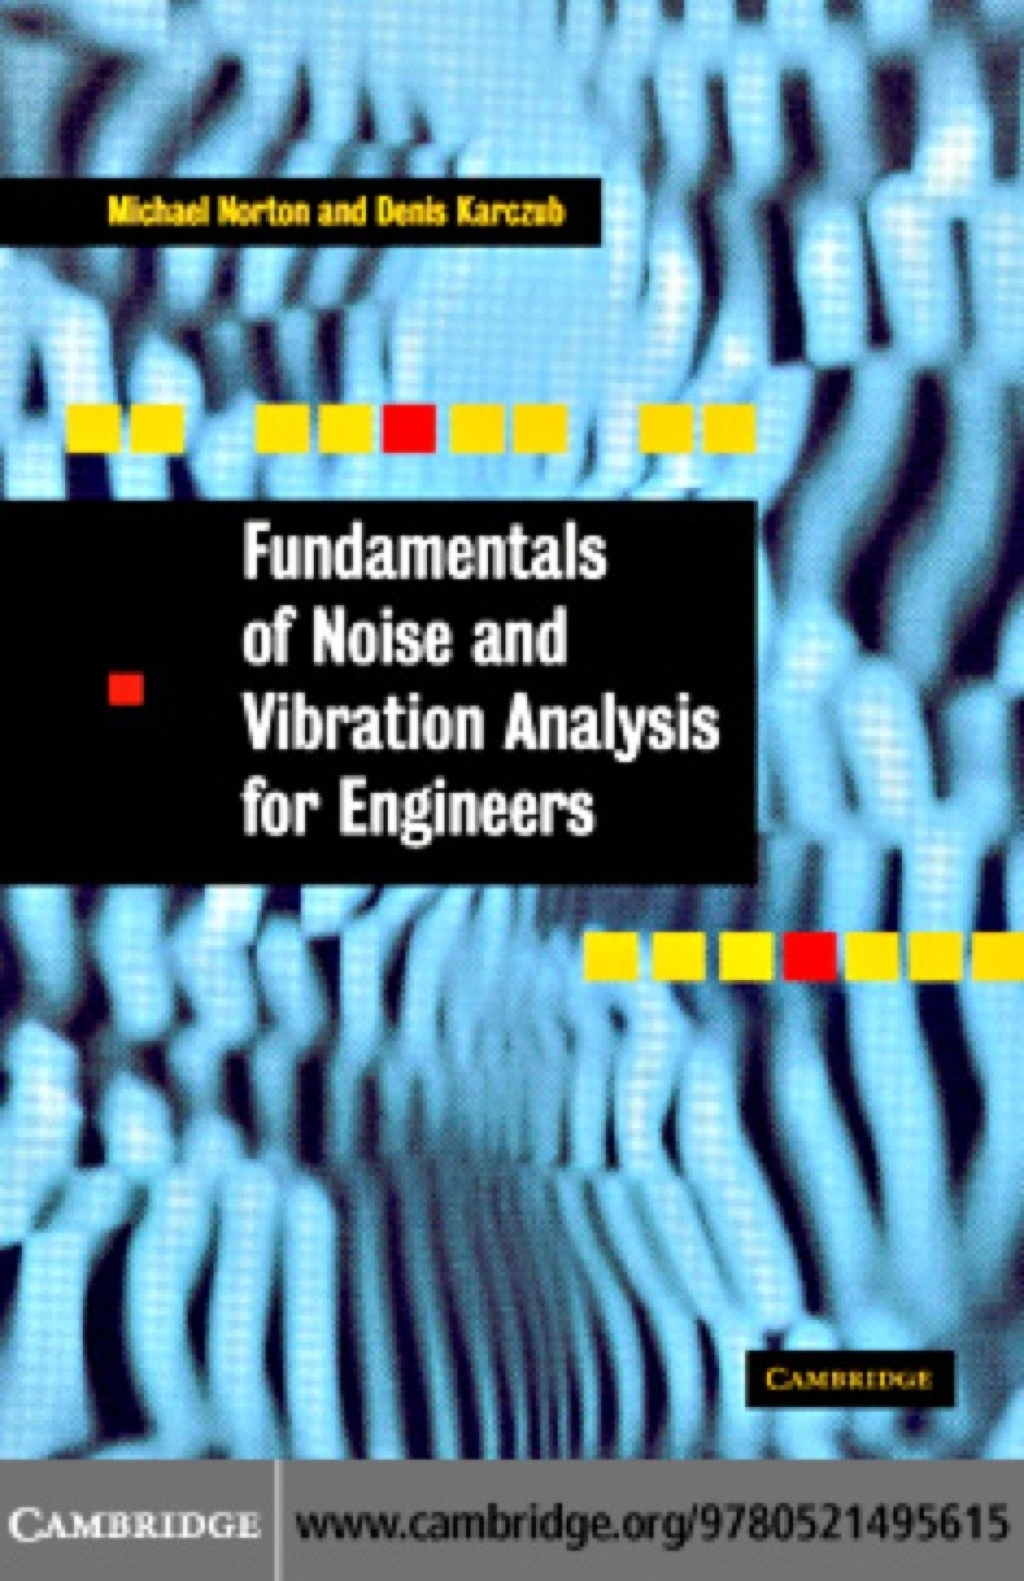 Fundamentals of Noise and Vibration Analysis for Engineers (ebook) eBooks